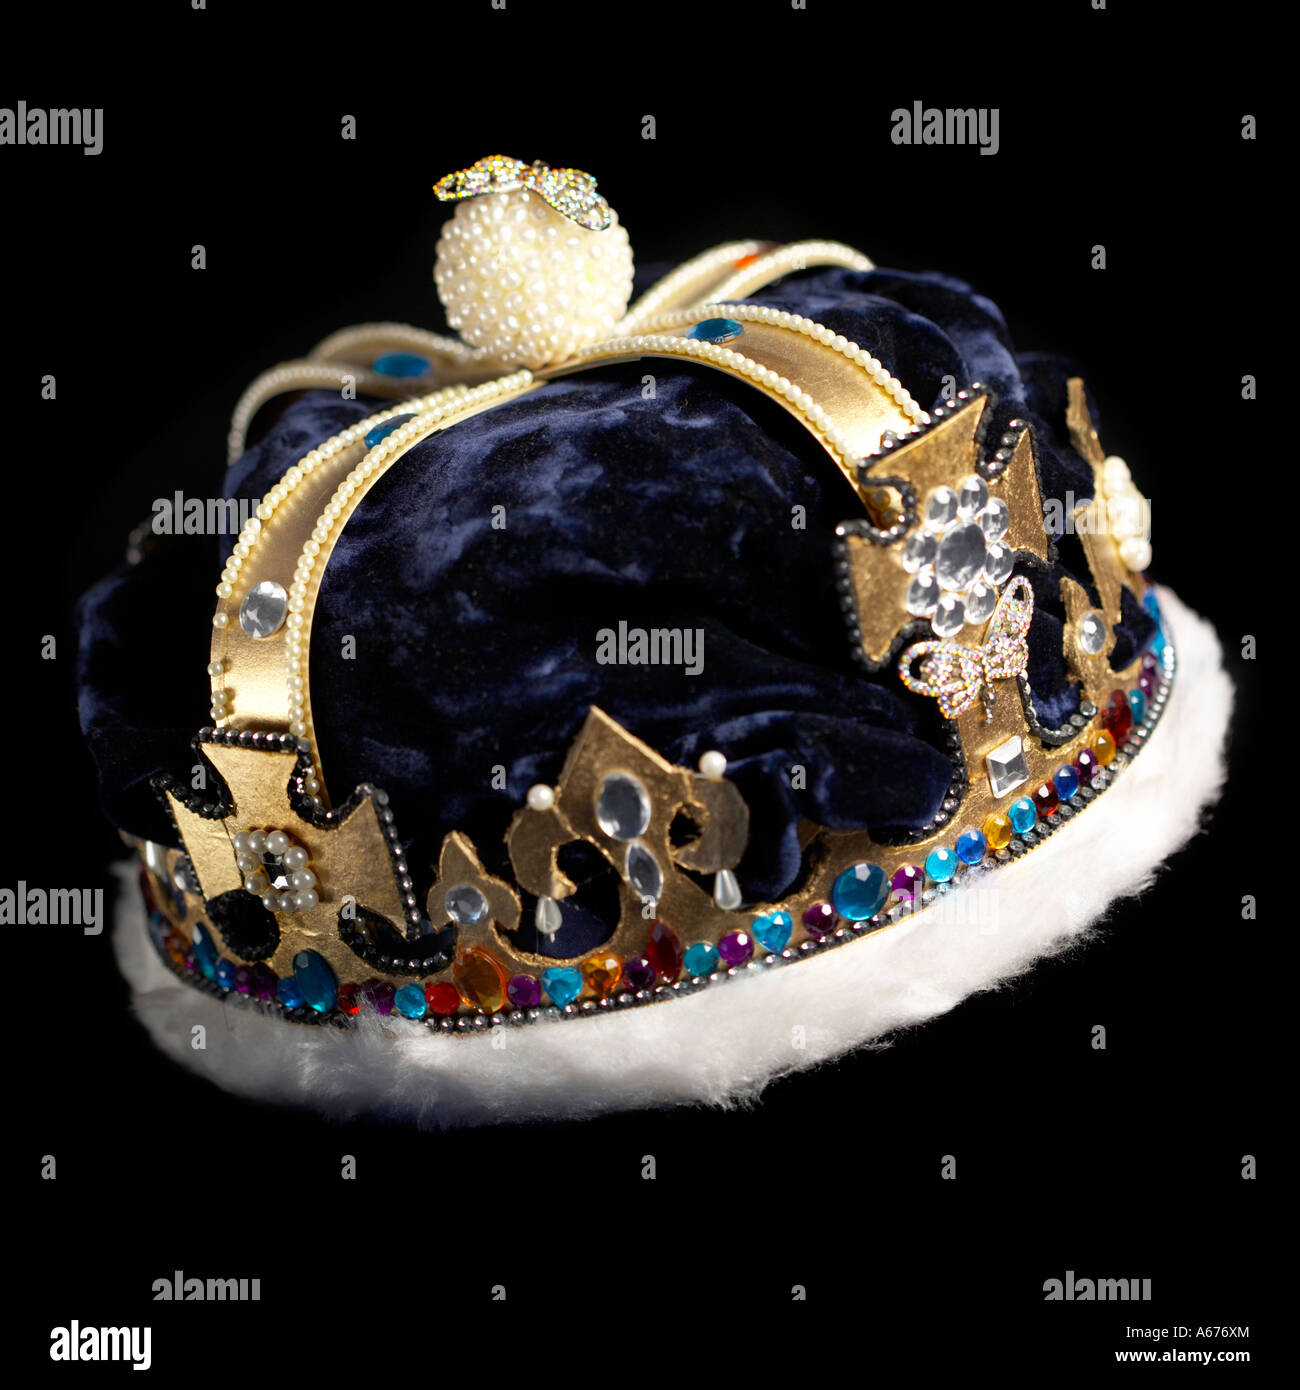 Fake Crown Royalty Concept - Stock Image